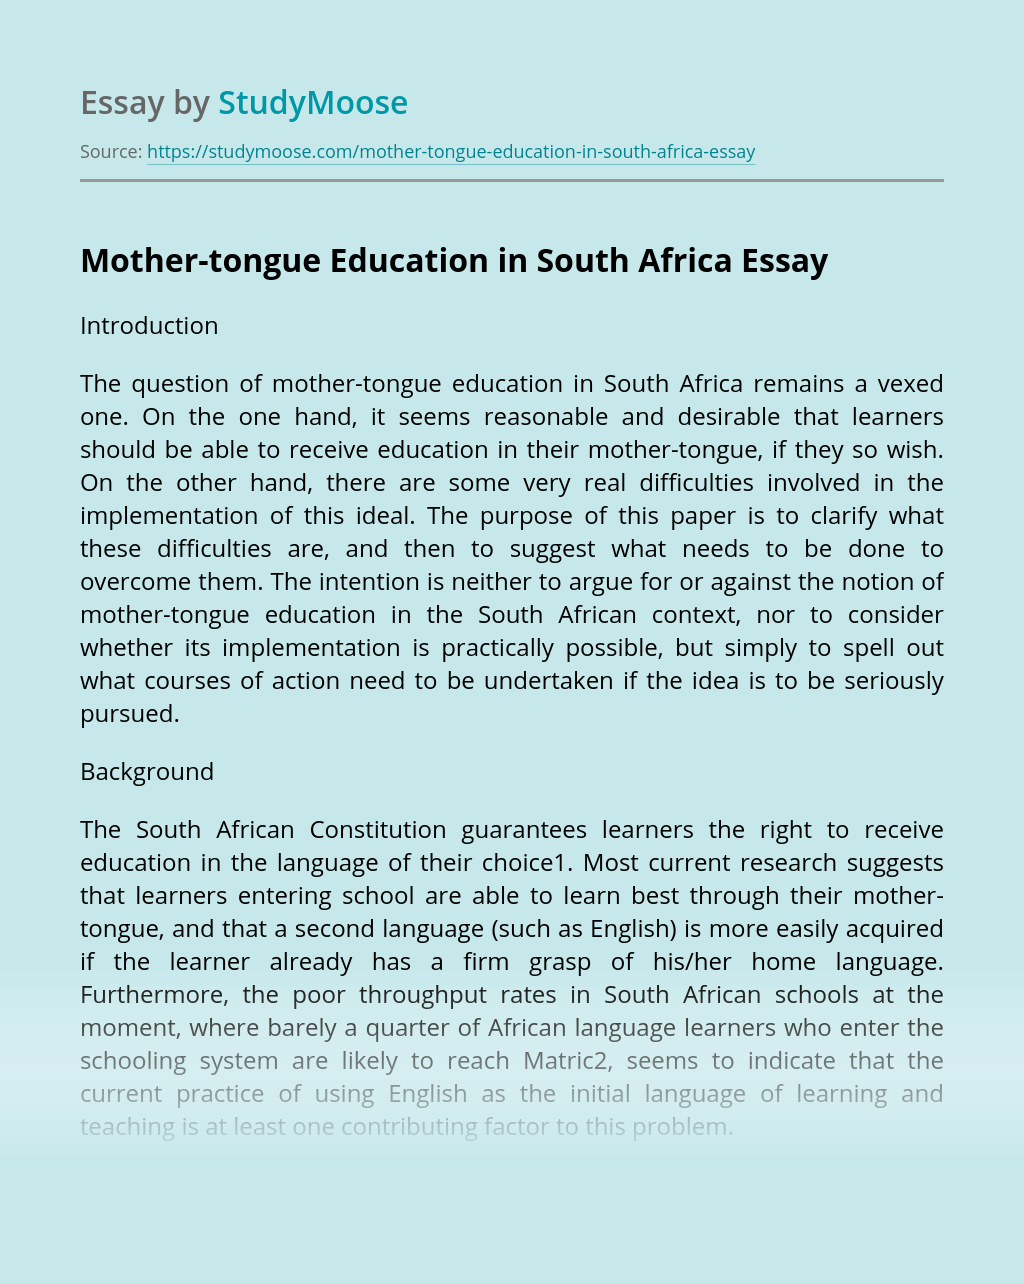 Mother-tongue Education in South Africa